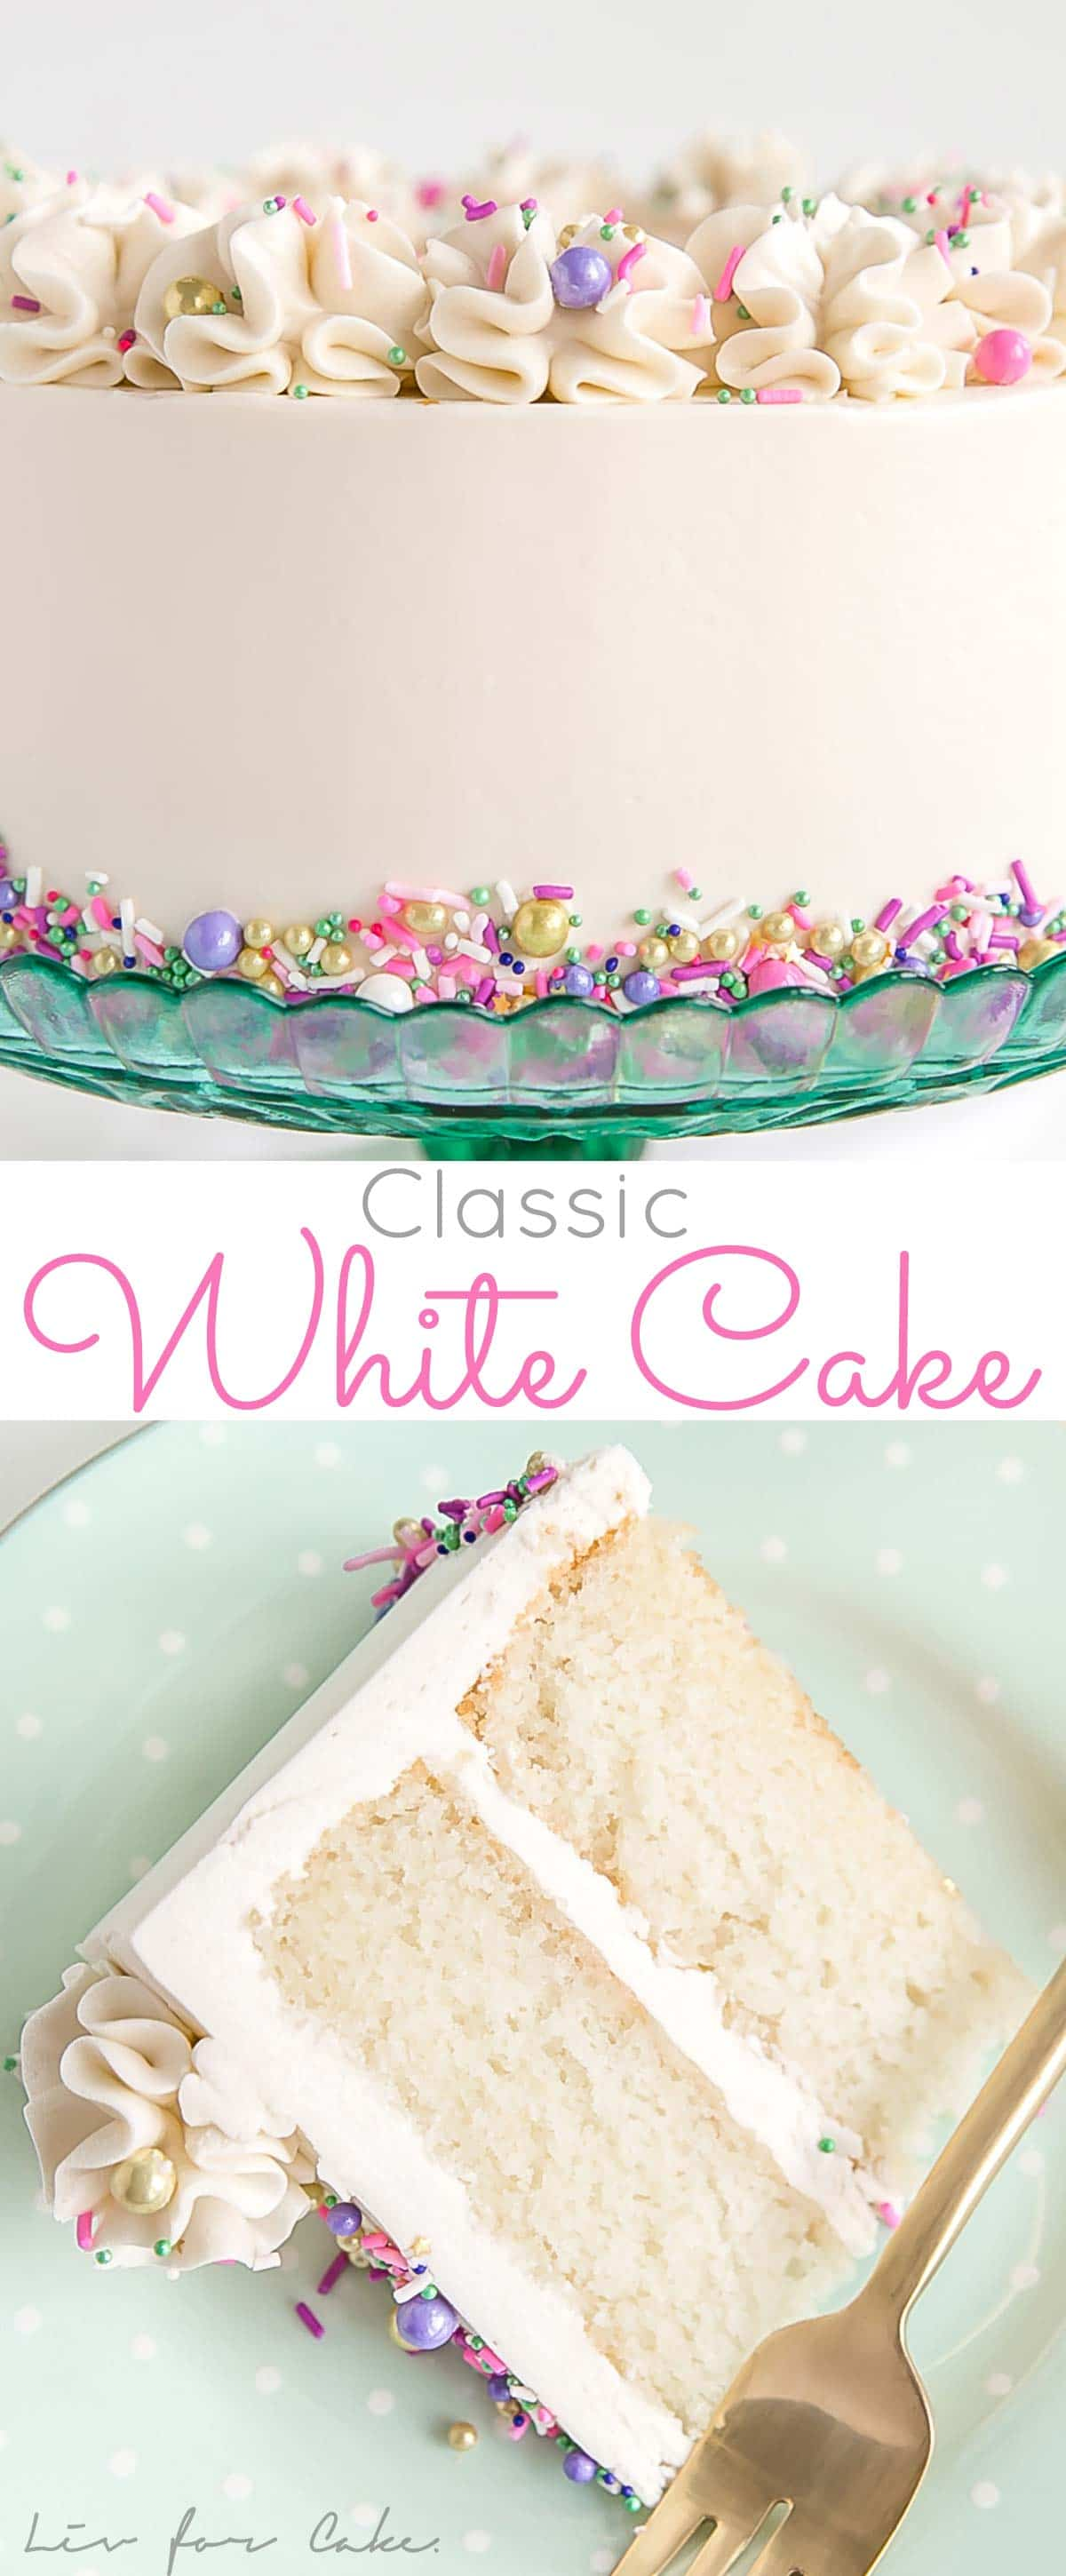 This Classic White Cake recipe pairs fluffy vanilla cake layers with a silky white Swiss meringue buttercream.